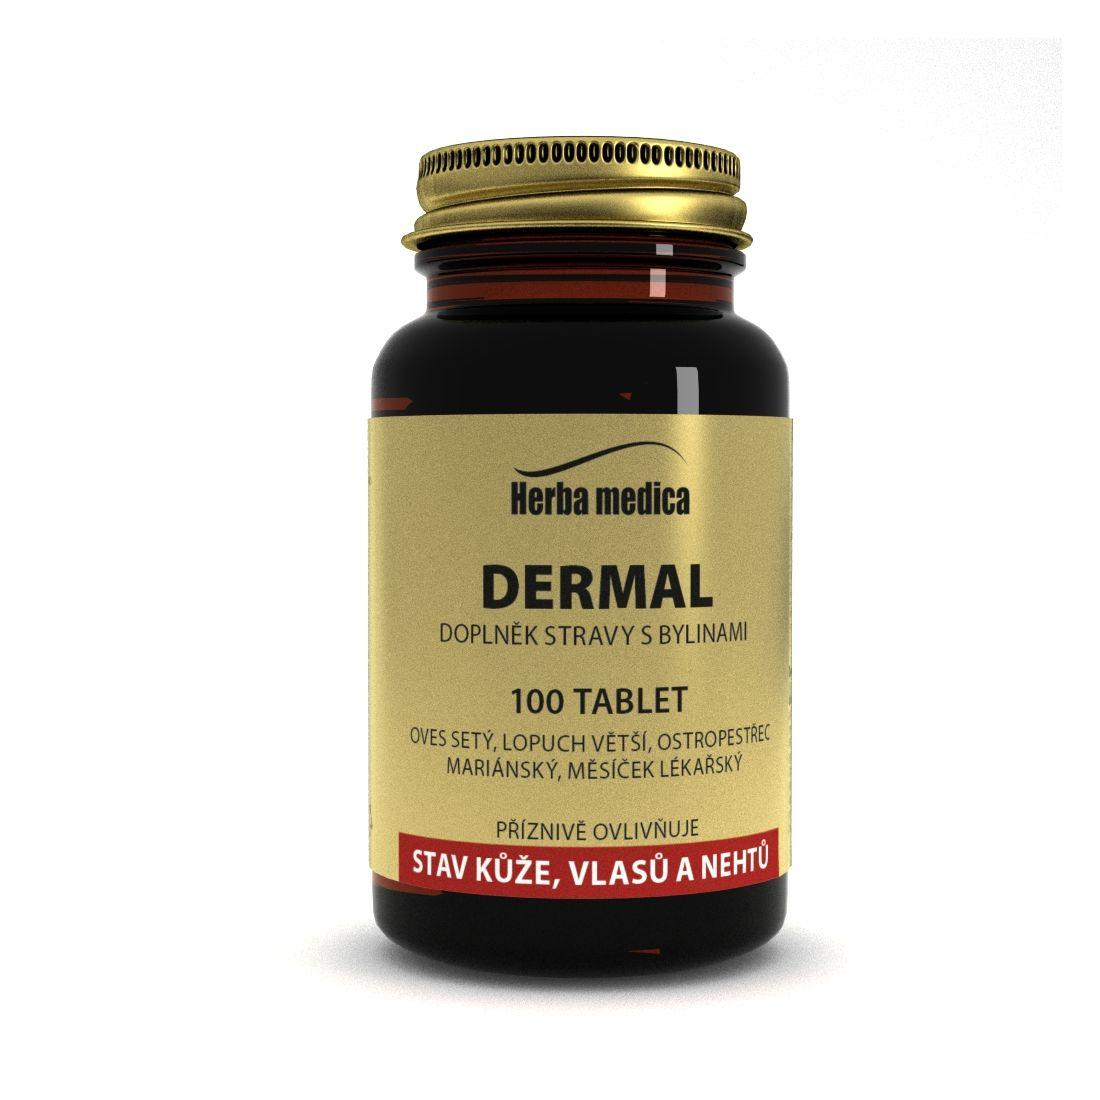 Herba Medica Dermal 50 g,100 ks (tablet)